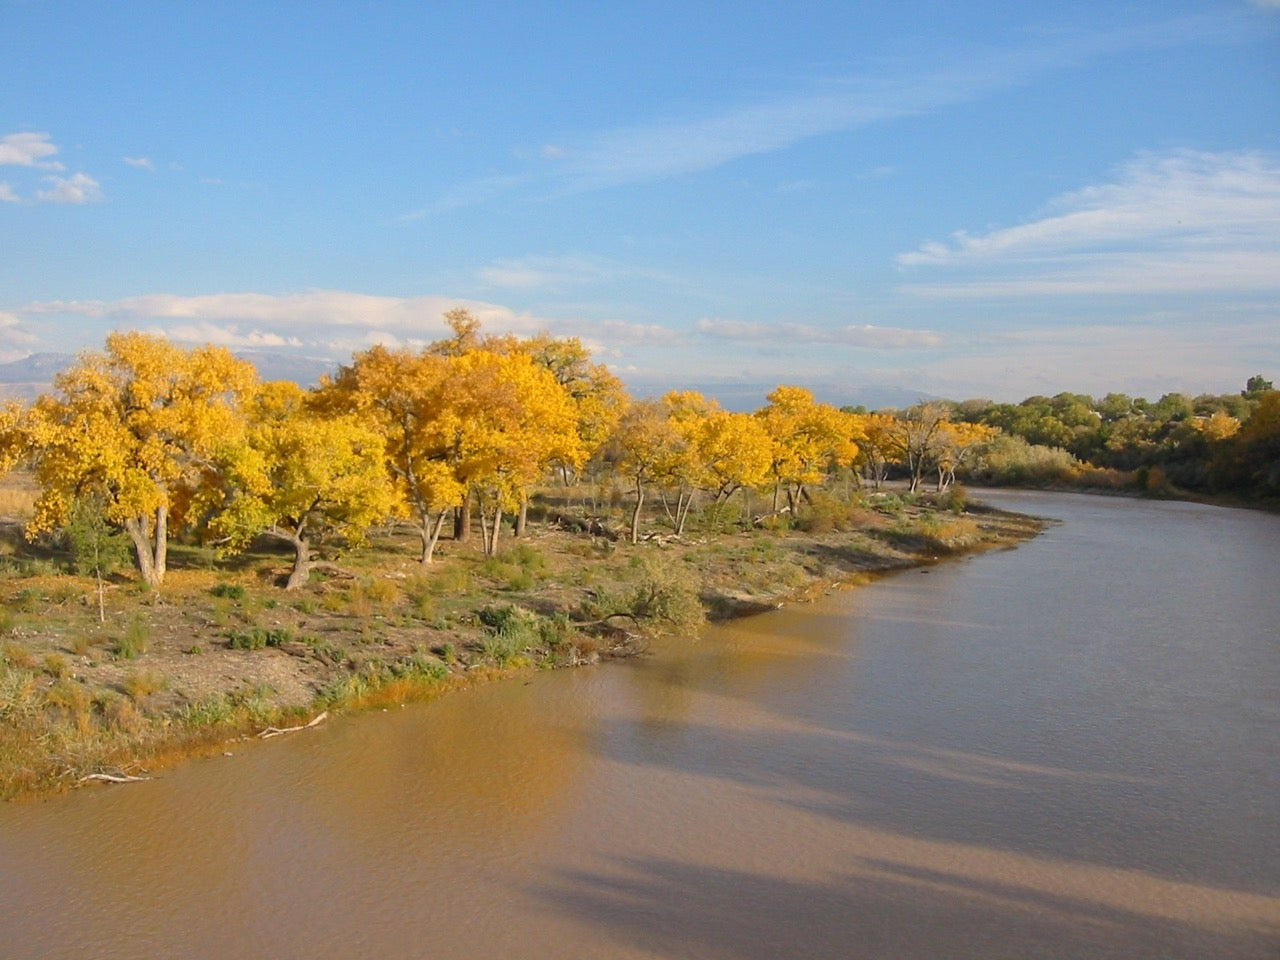 Applied plant ecologist Anna Sher presents her research on April 6 at ASU Polytechnic campus